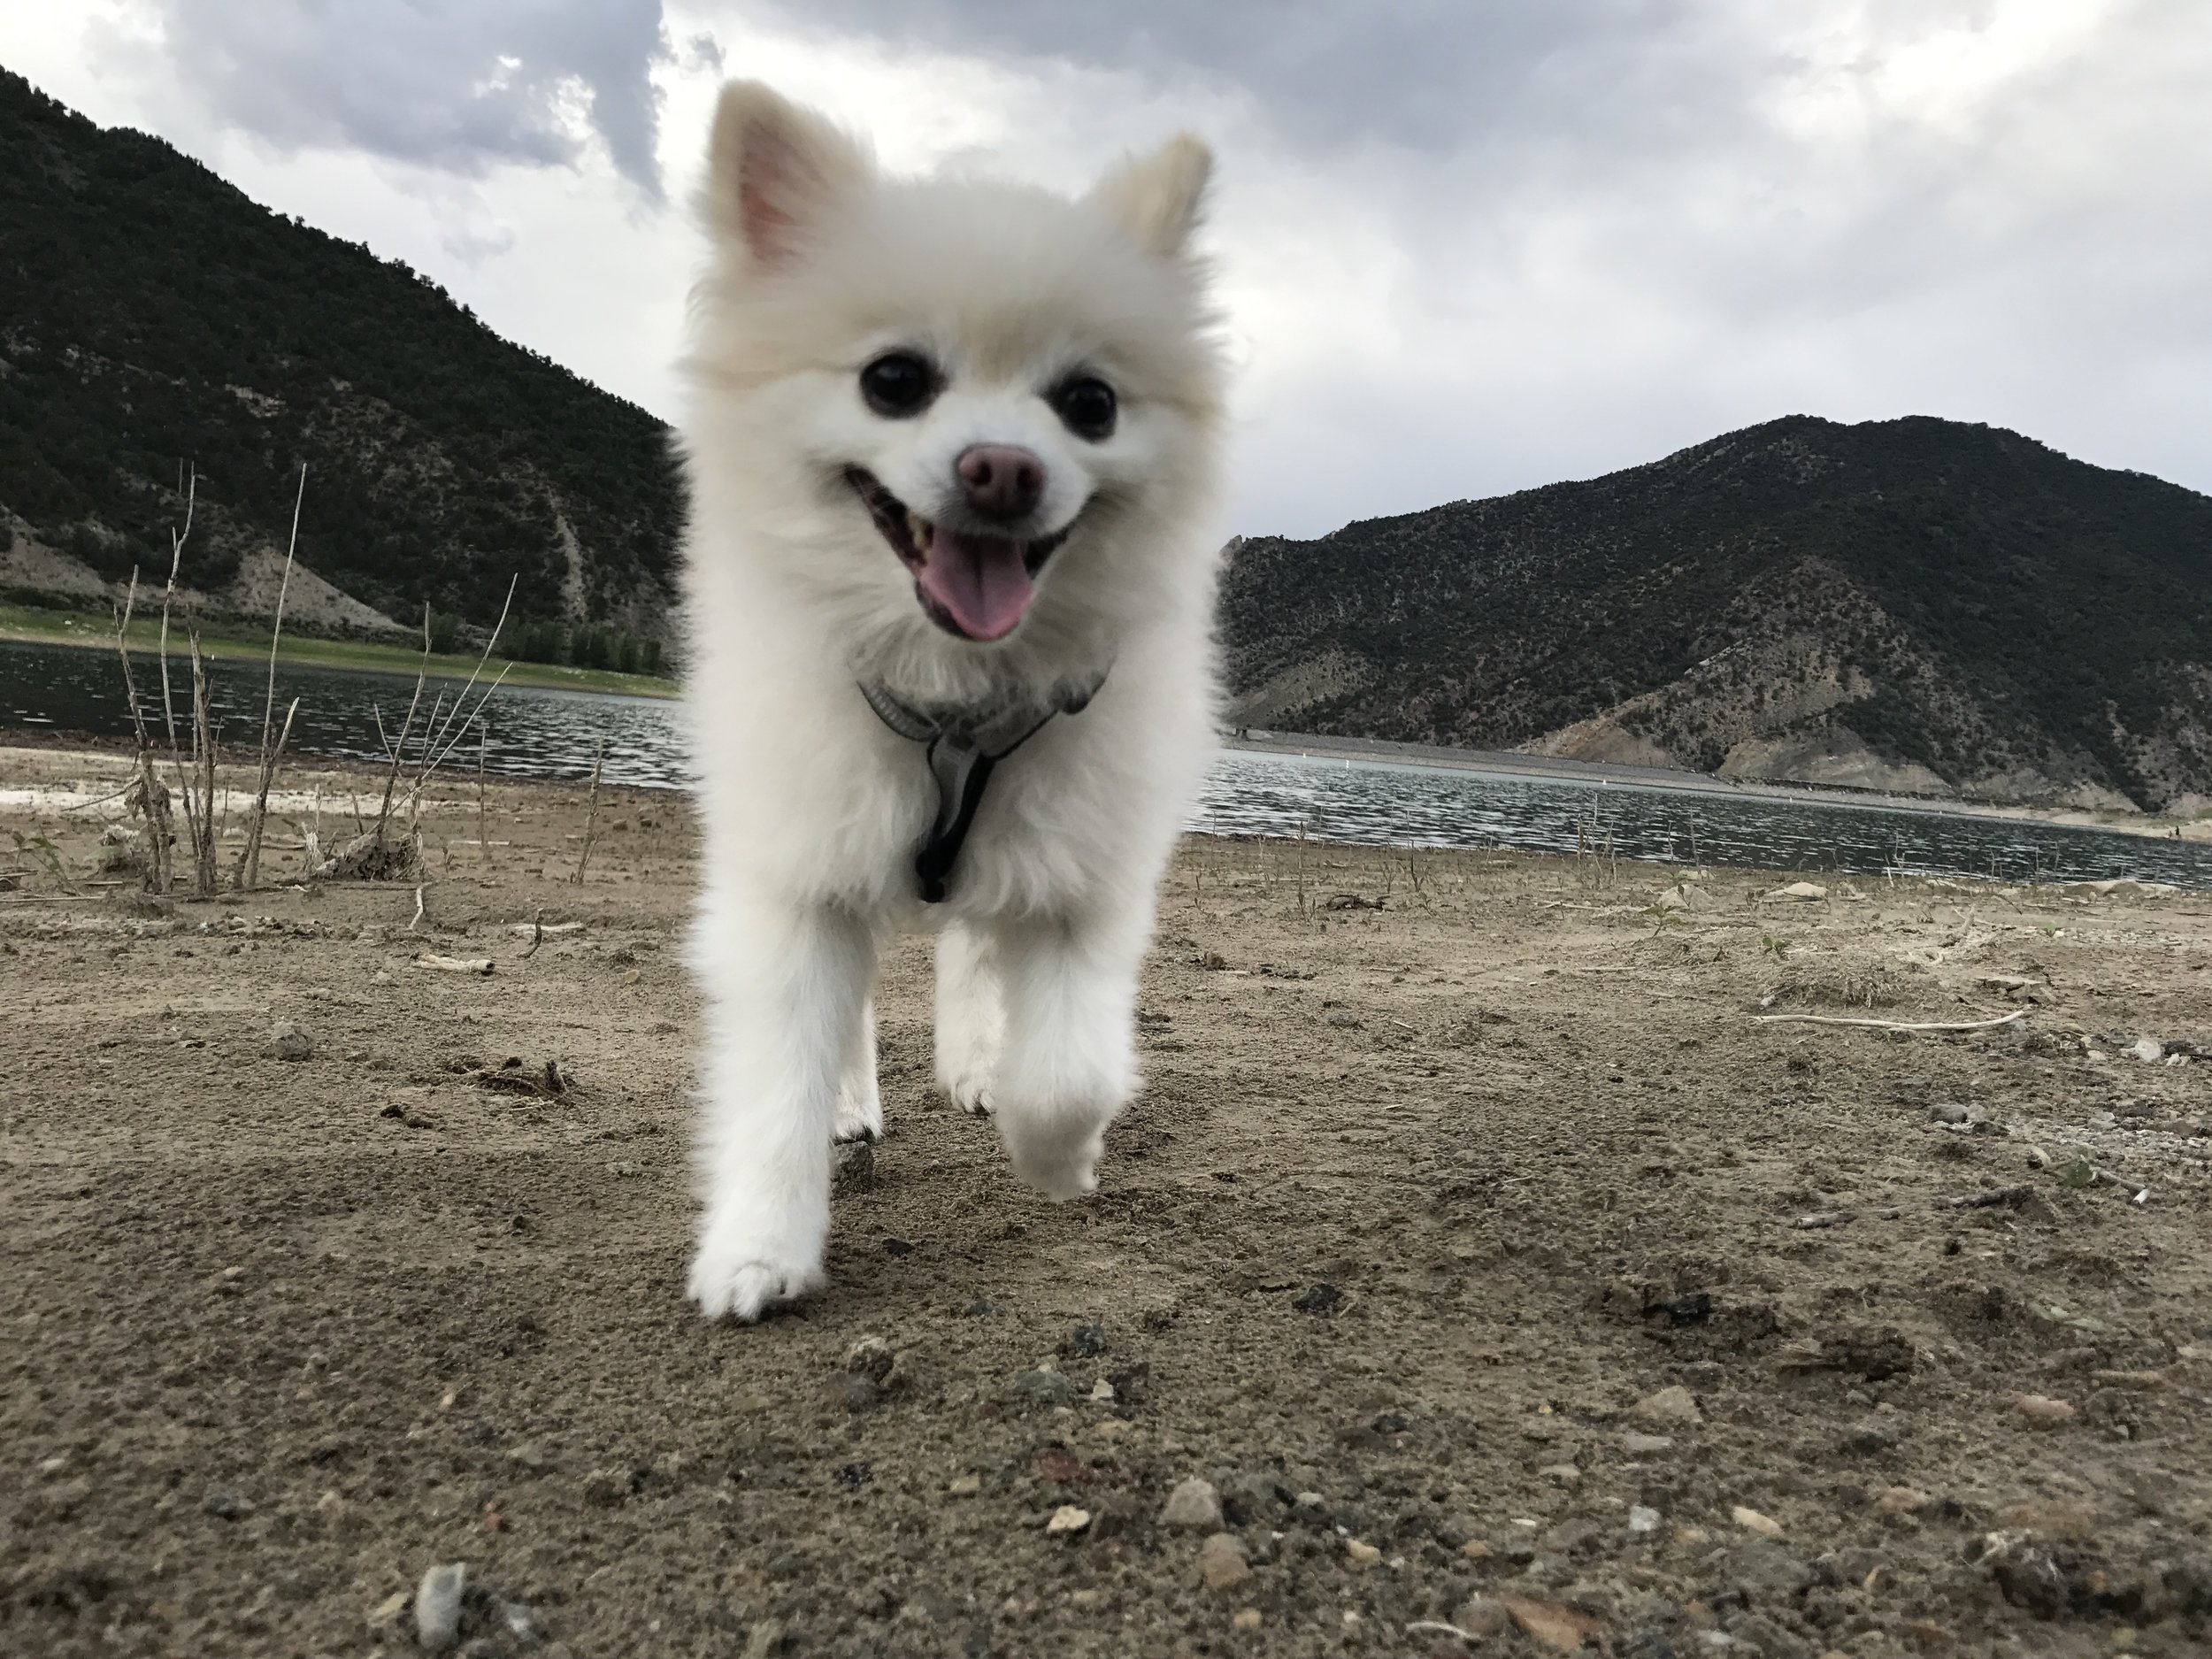 Brooke_Clay_RanchDog_Pomeranian_0030.JPG